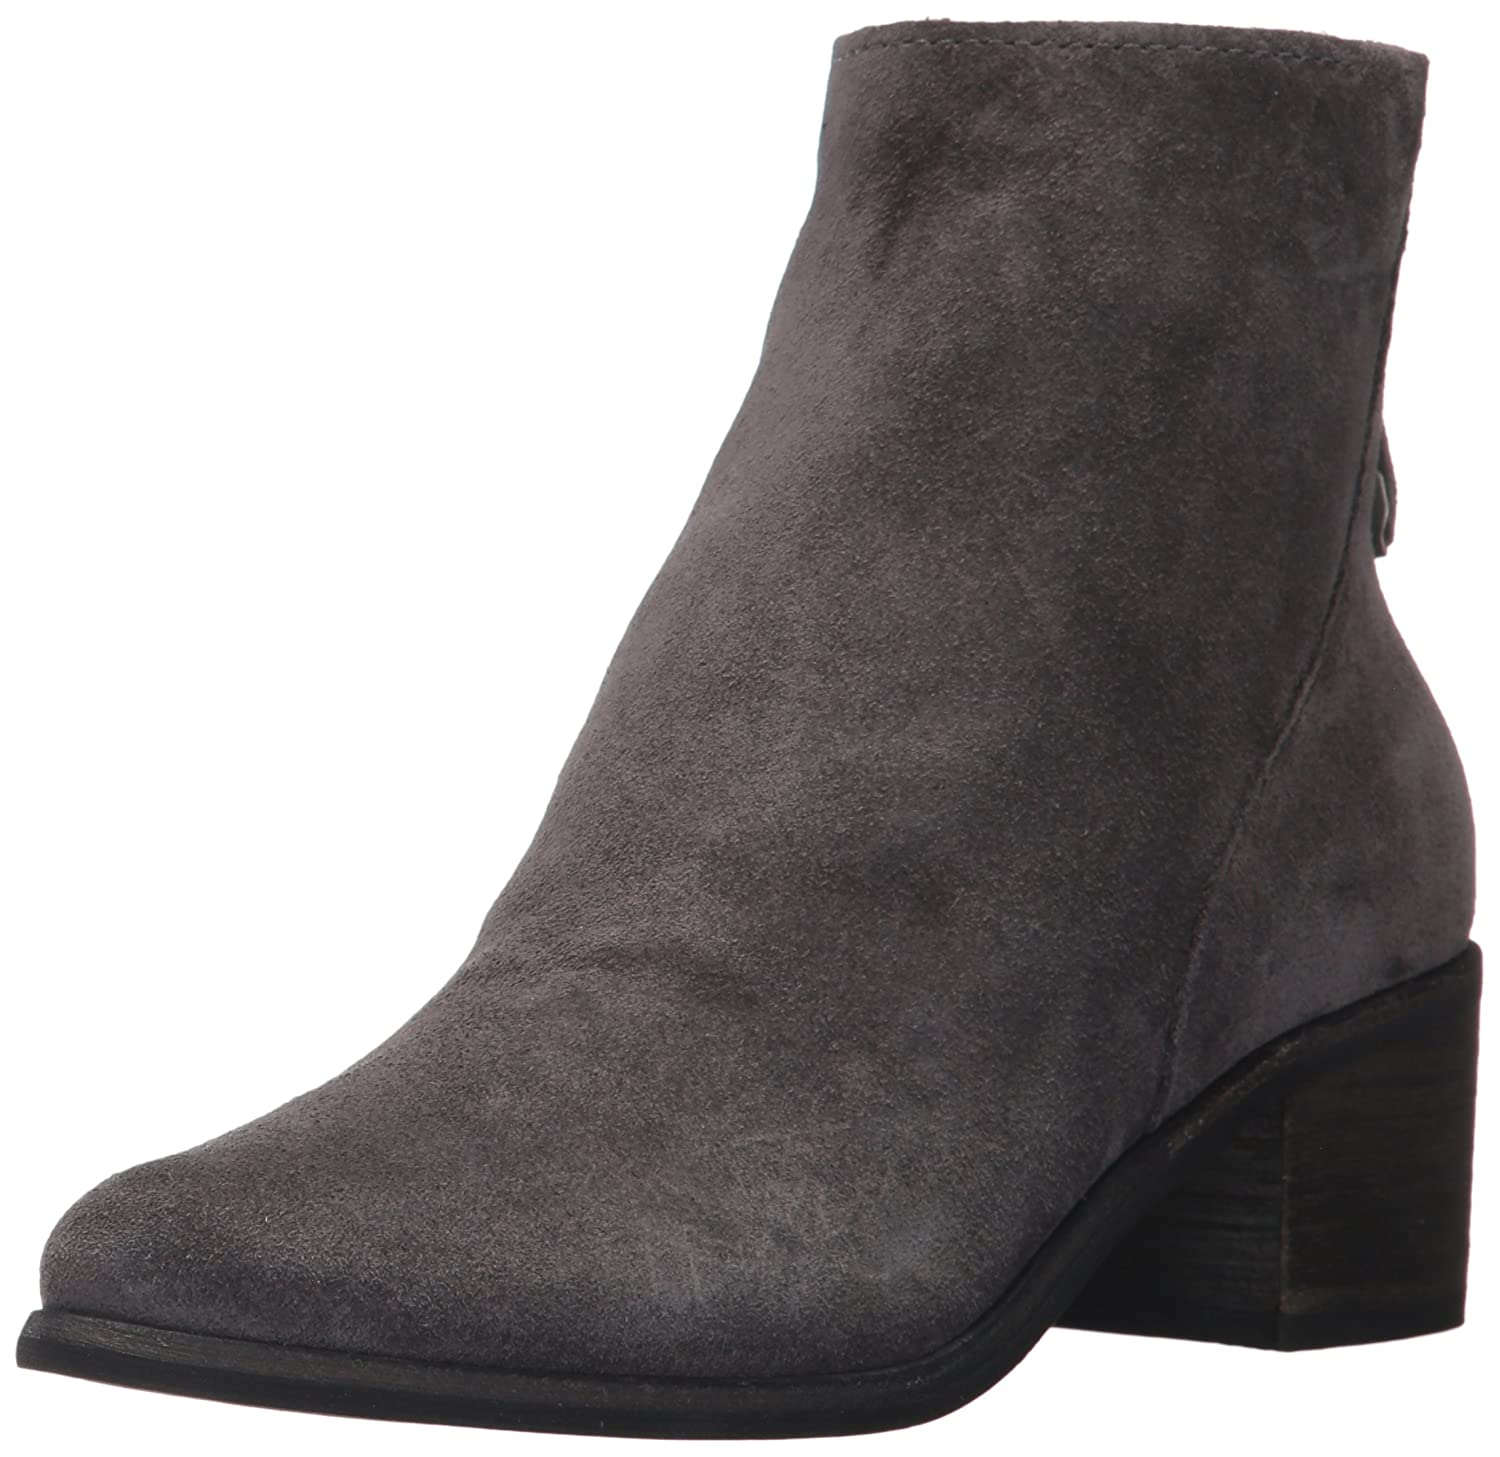 Dolce Vita Women's Cassius Ankle Boot B072MGJ5W6 9.5 B(M) US|Anthracite Suede